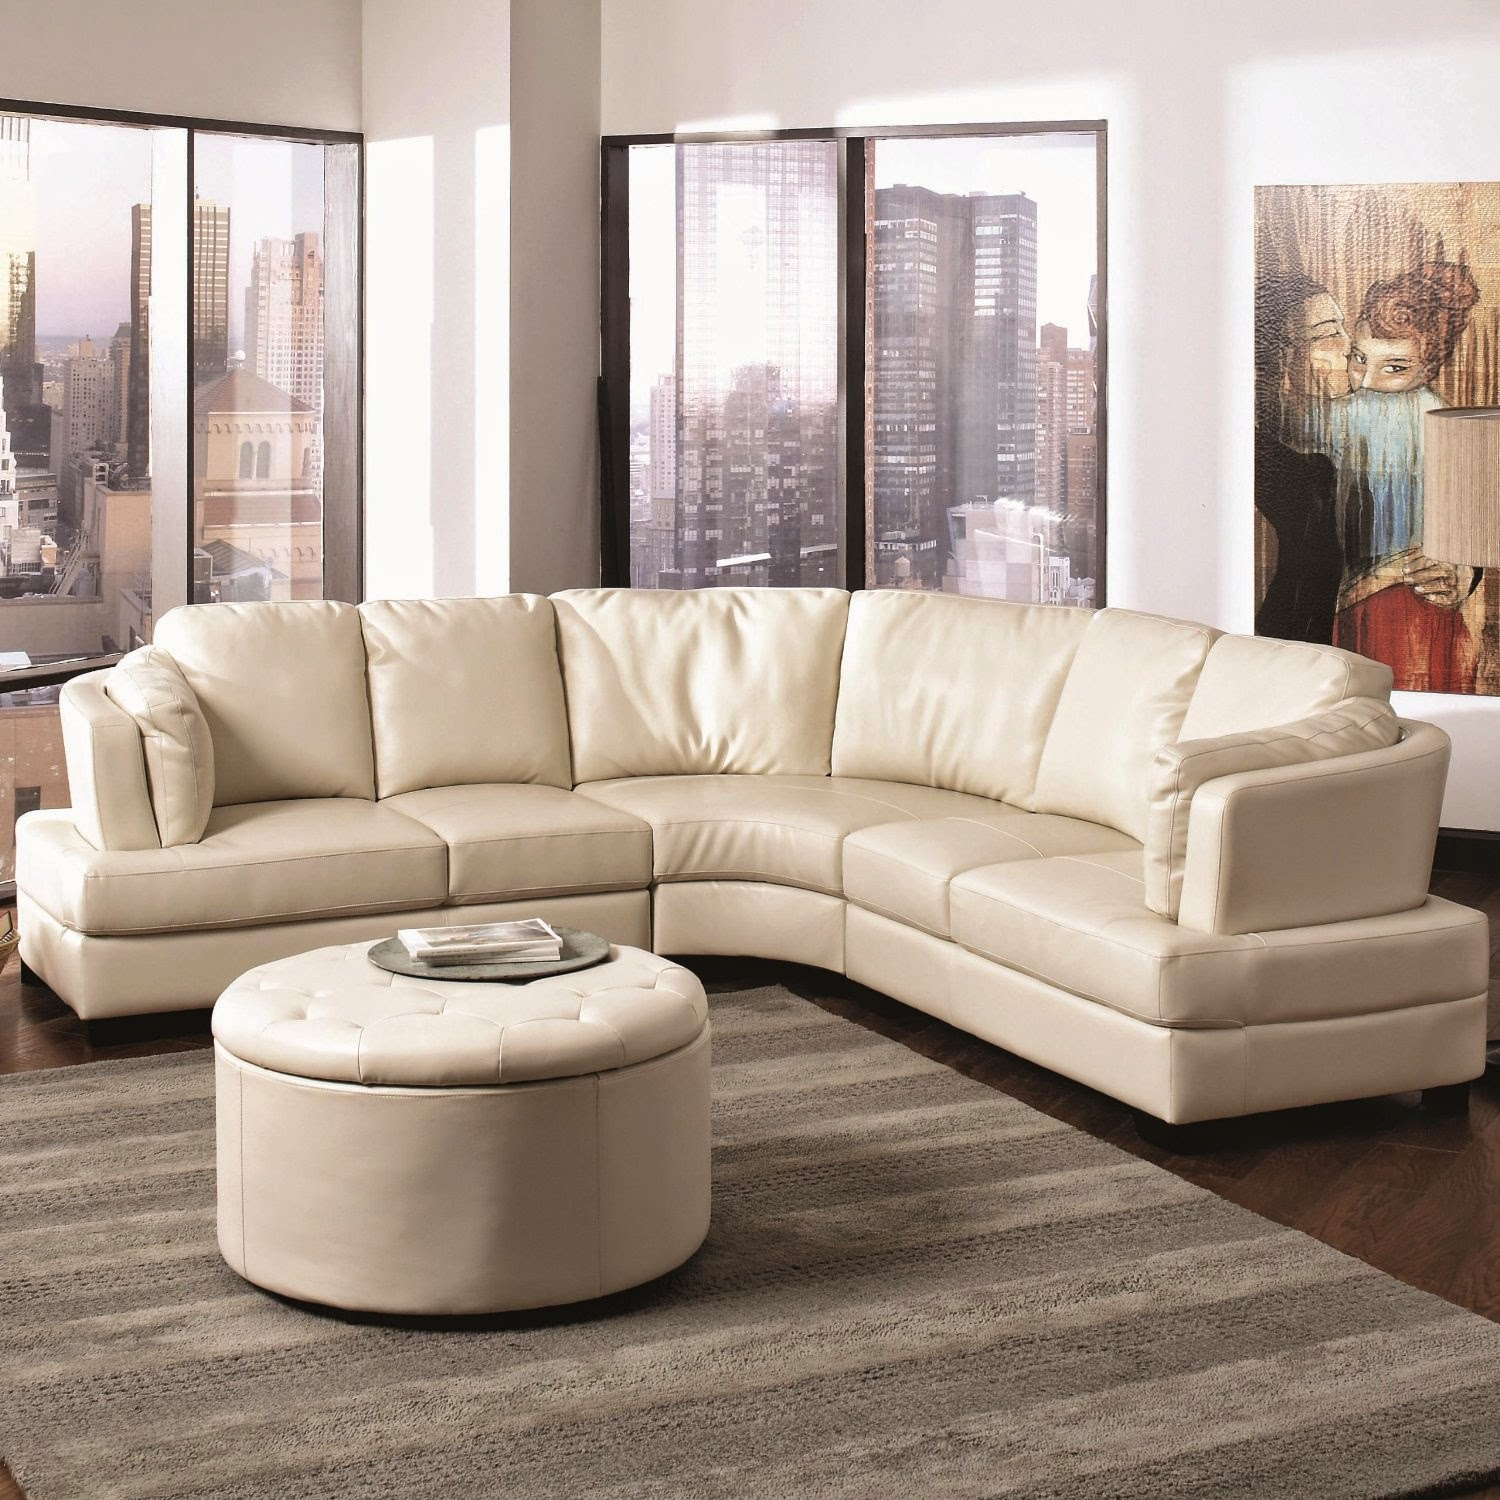 Dazzling sectional couches for sale with cushions and wooden legs for home furniture ideas with cheap sectional couches for sale